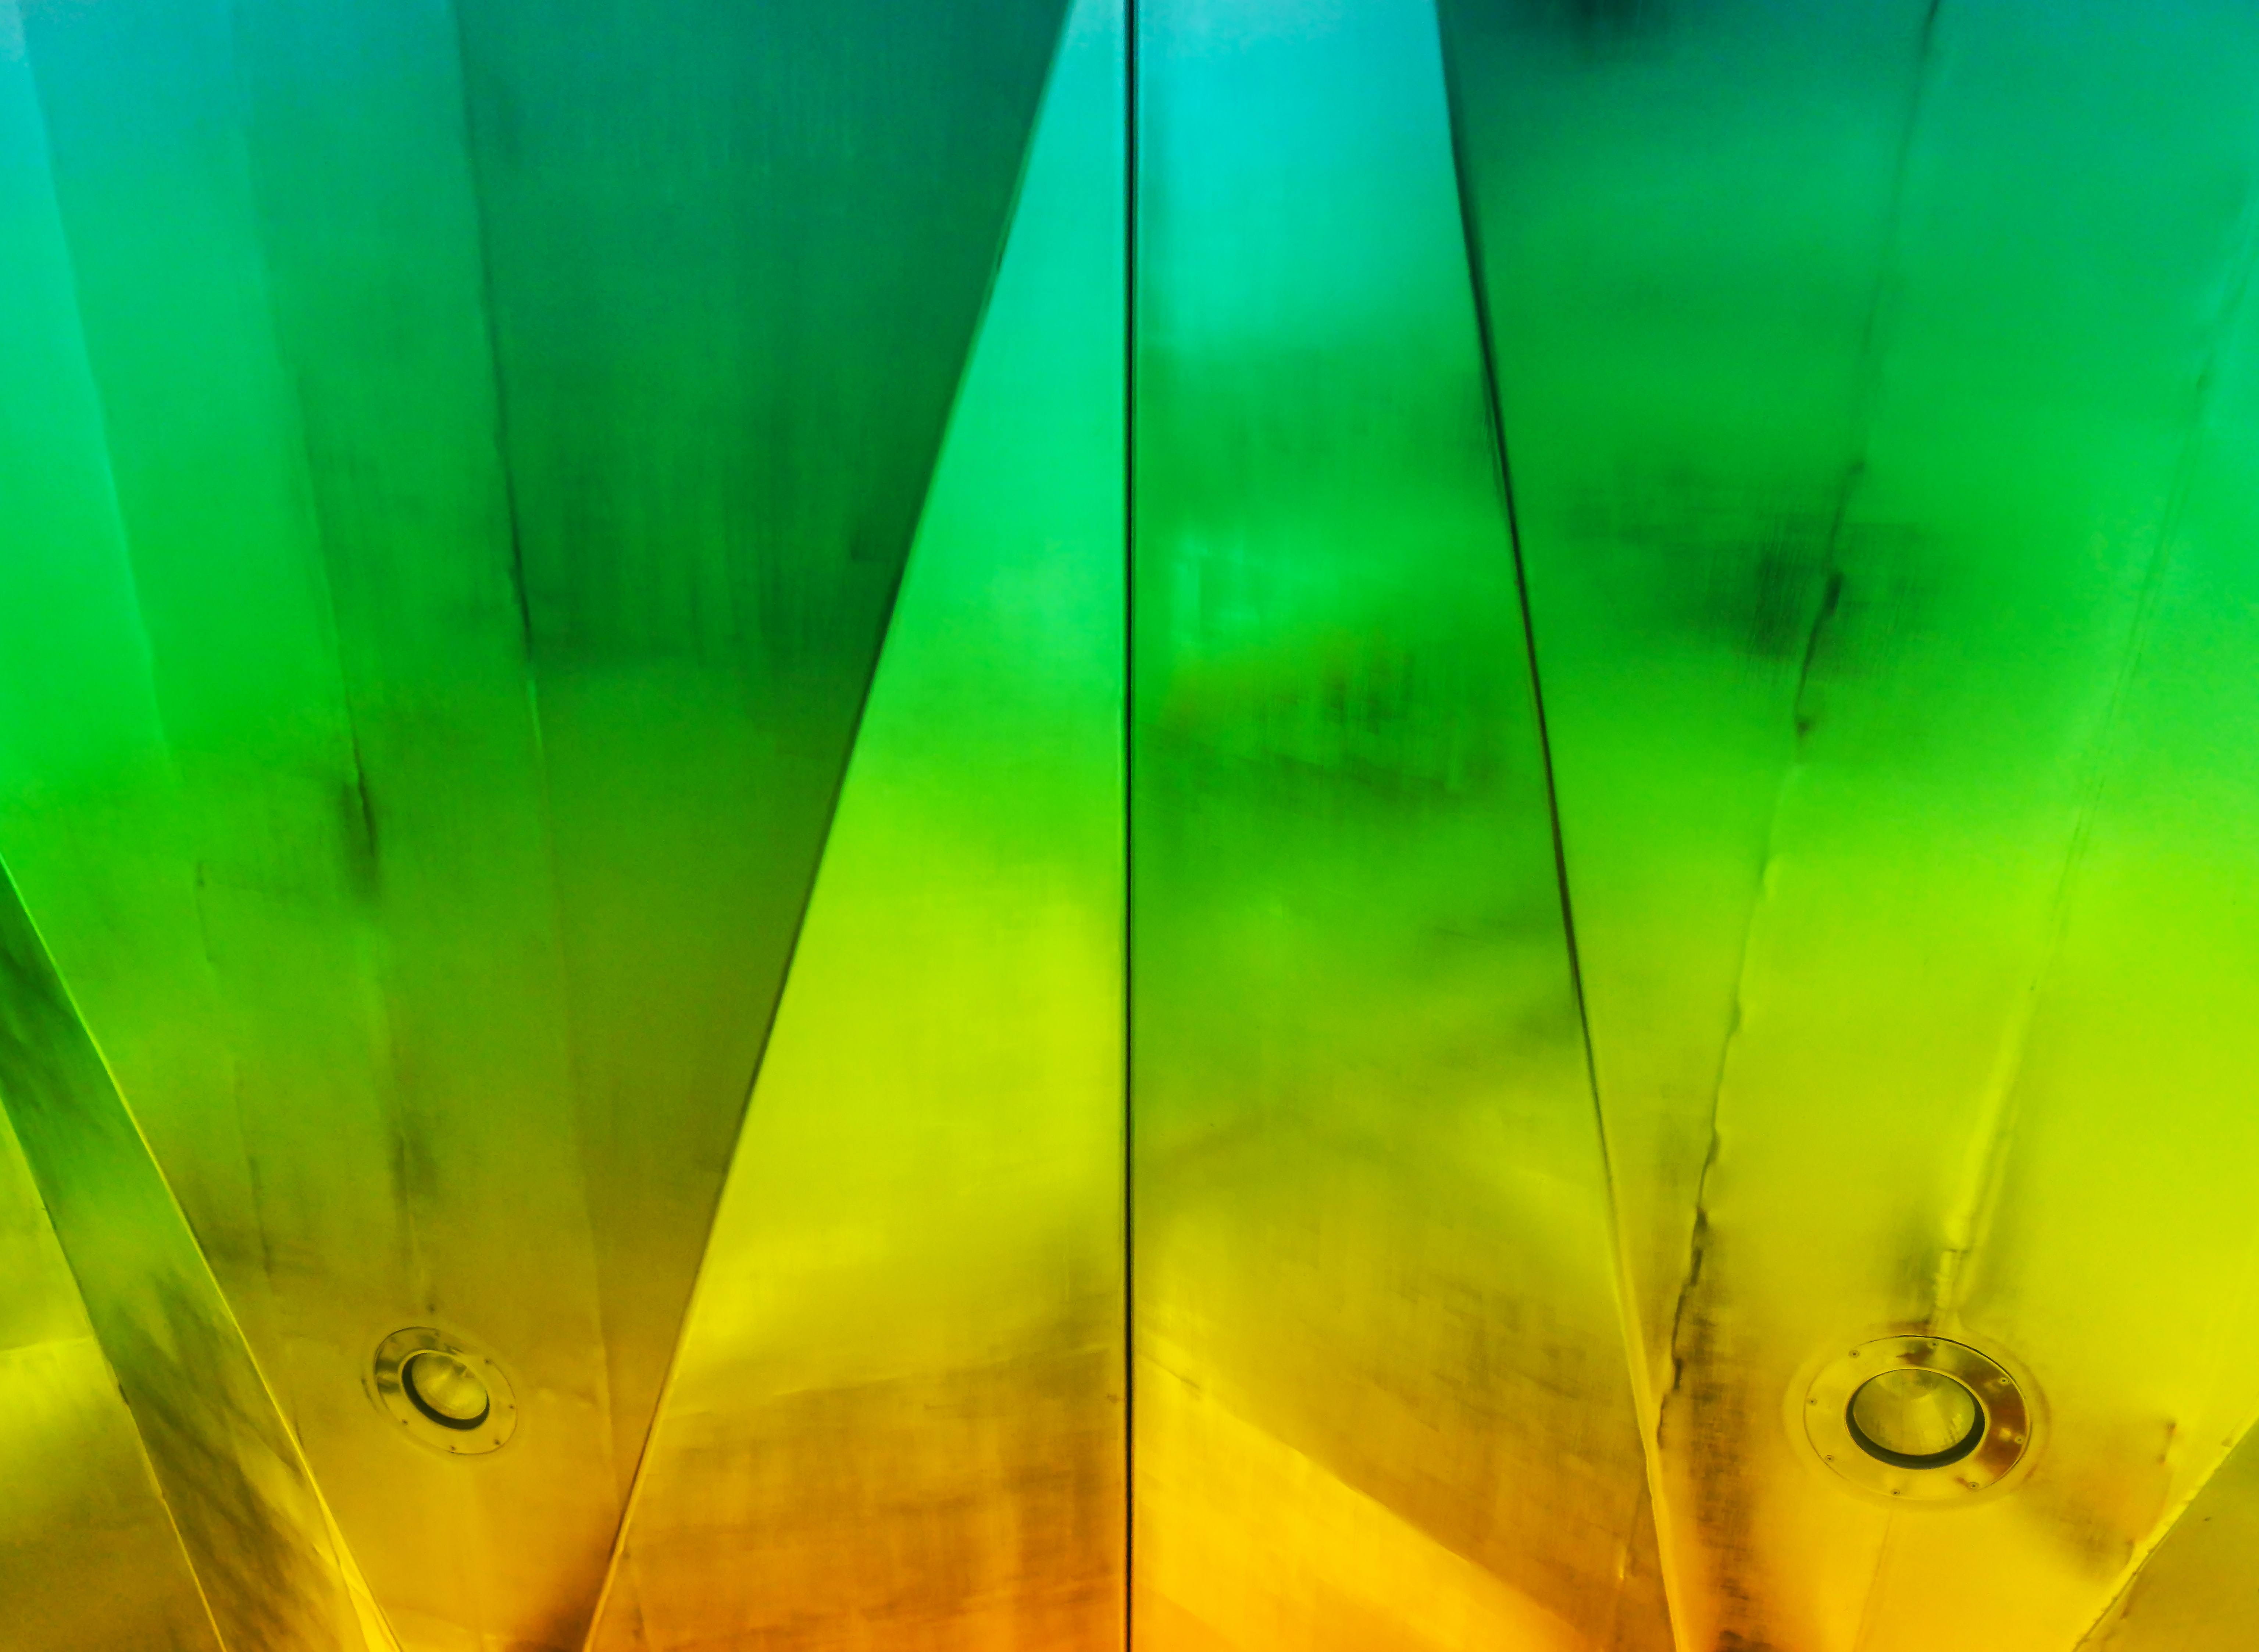 green and yellow abstract wallpaper